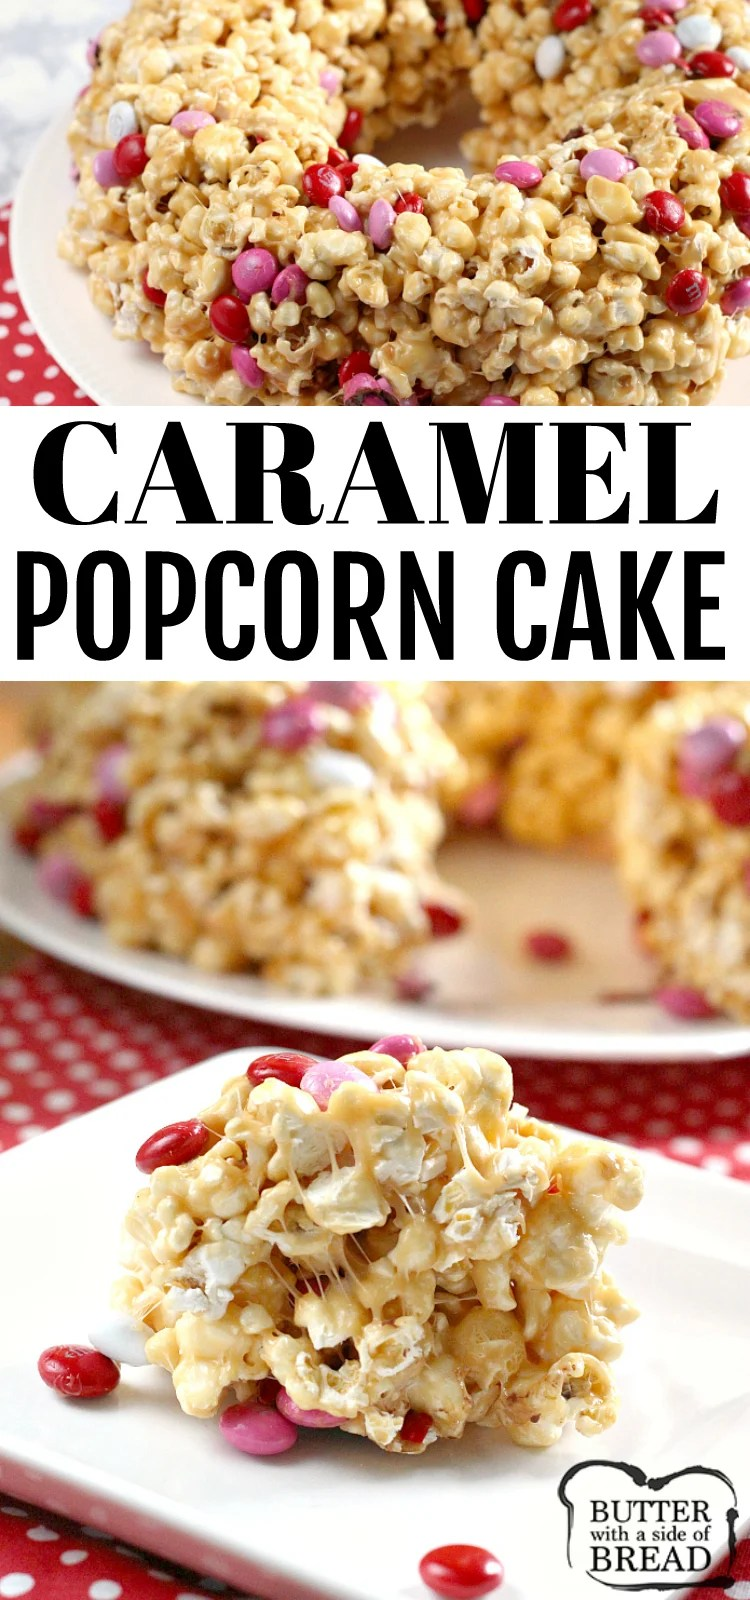 "Caramel Popcorn Cake is made with caramel, marshmallows and a few other basic ingredients for a quick and easy no-bake dessert! This ""cake"" tastes like caramel popcorn but the caramel is a little bit softer and not quite as sticky so it is much easier to eat without making a huge mess!"